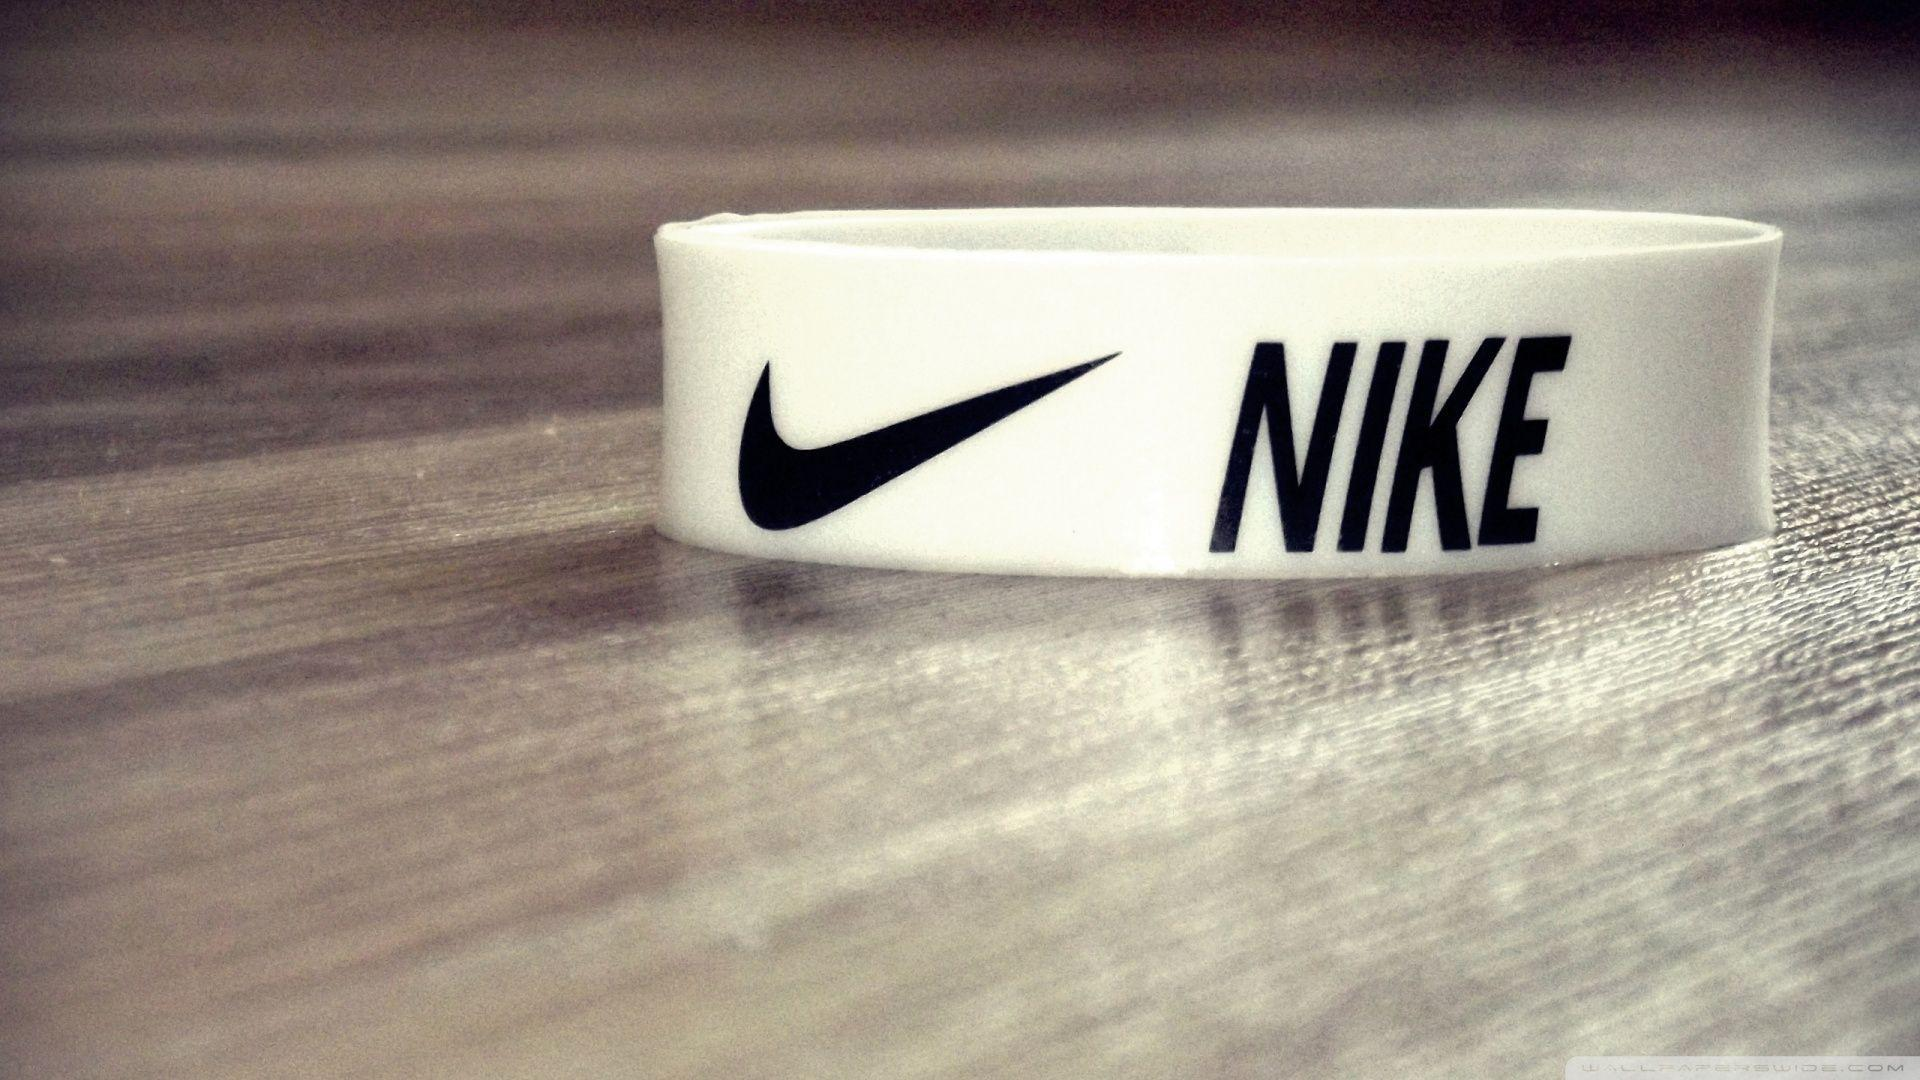 Nike Wallpapers 1 Backgrounds